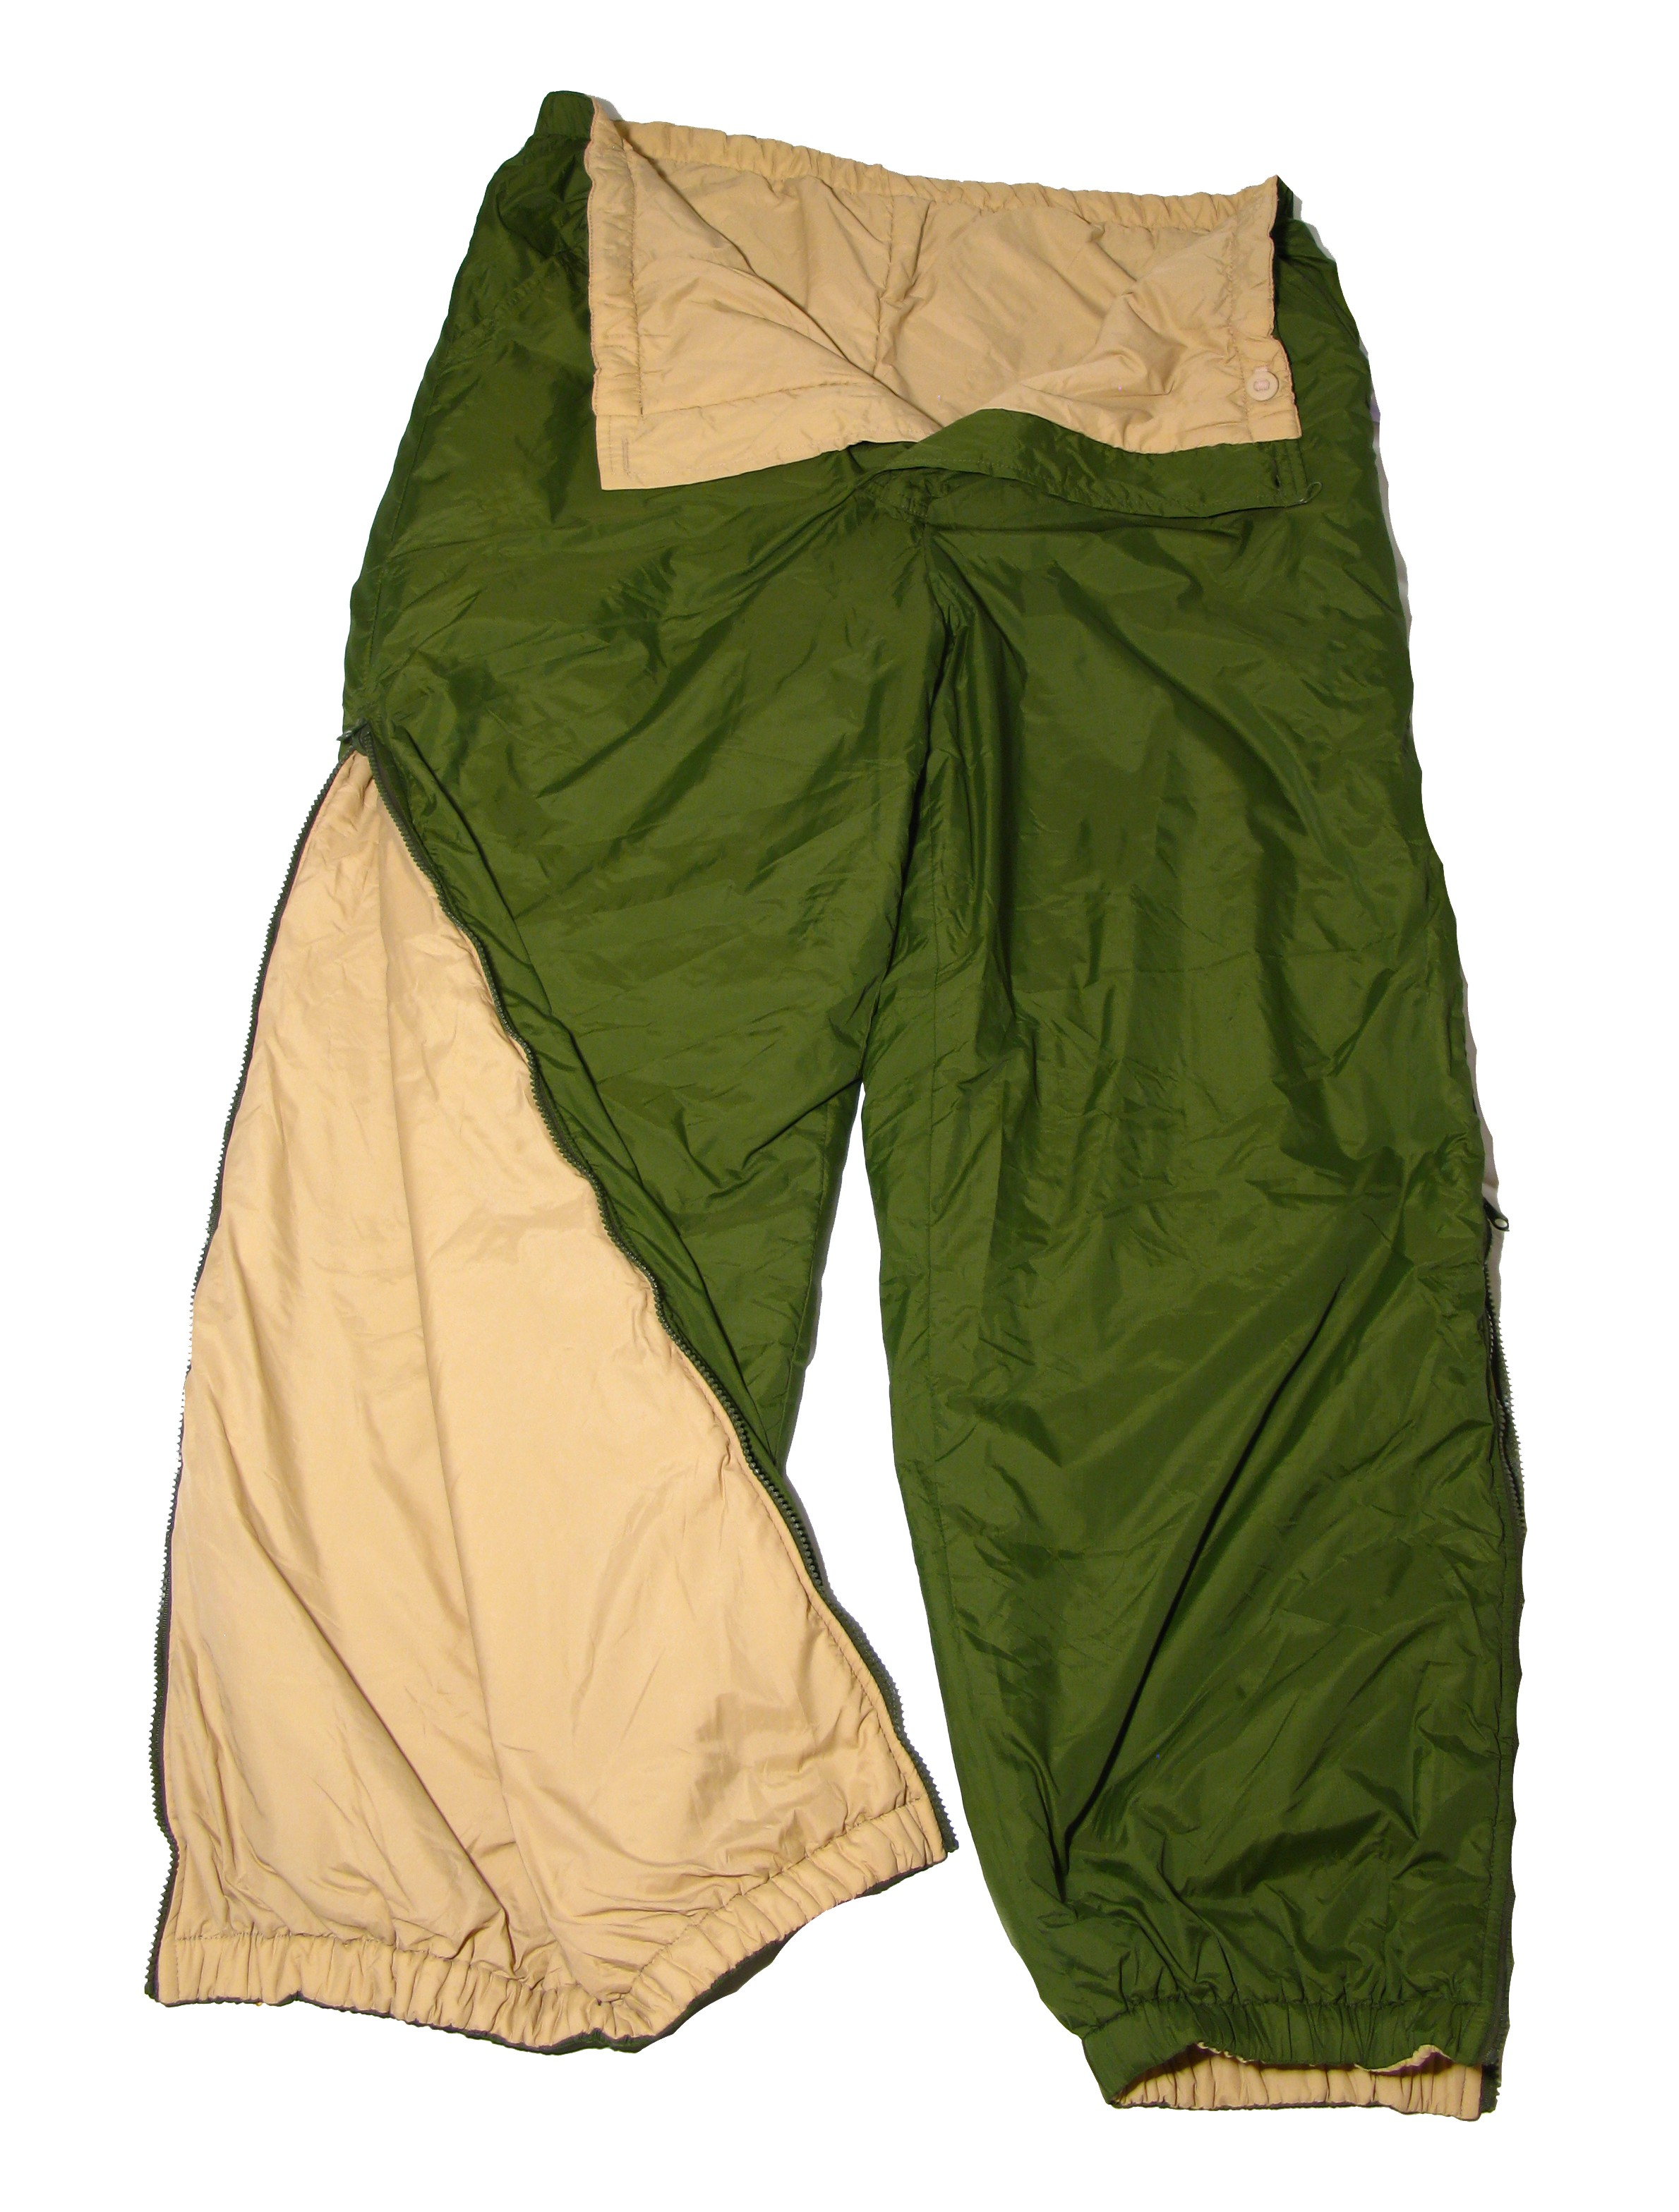 British Army Thermal & Reversible Trousers AKA Softy Trousers